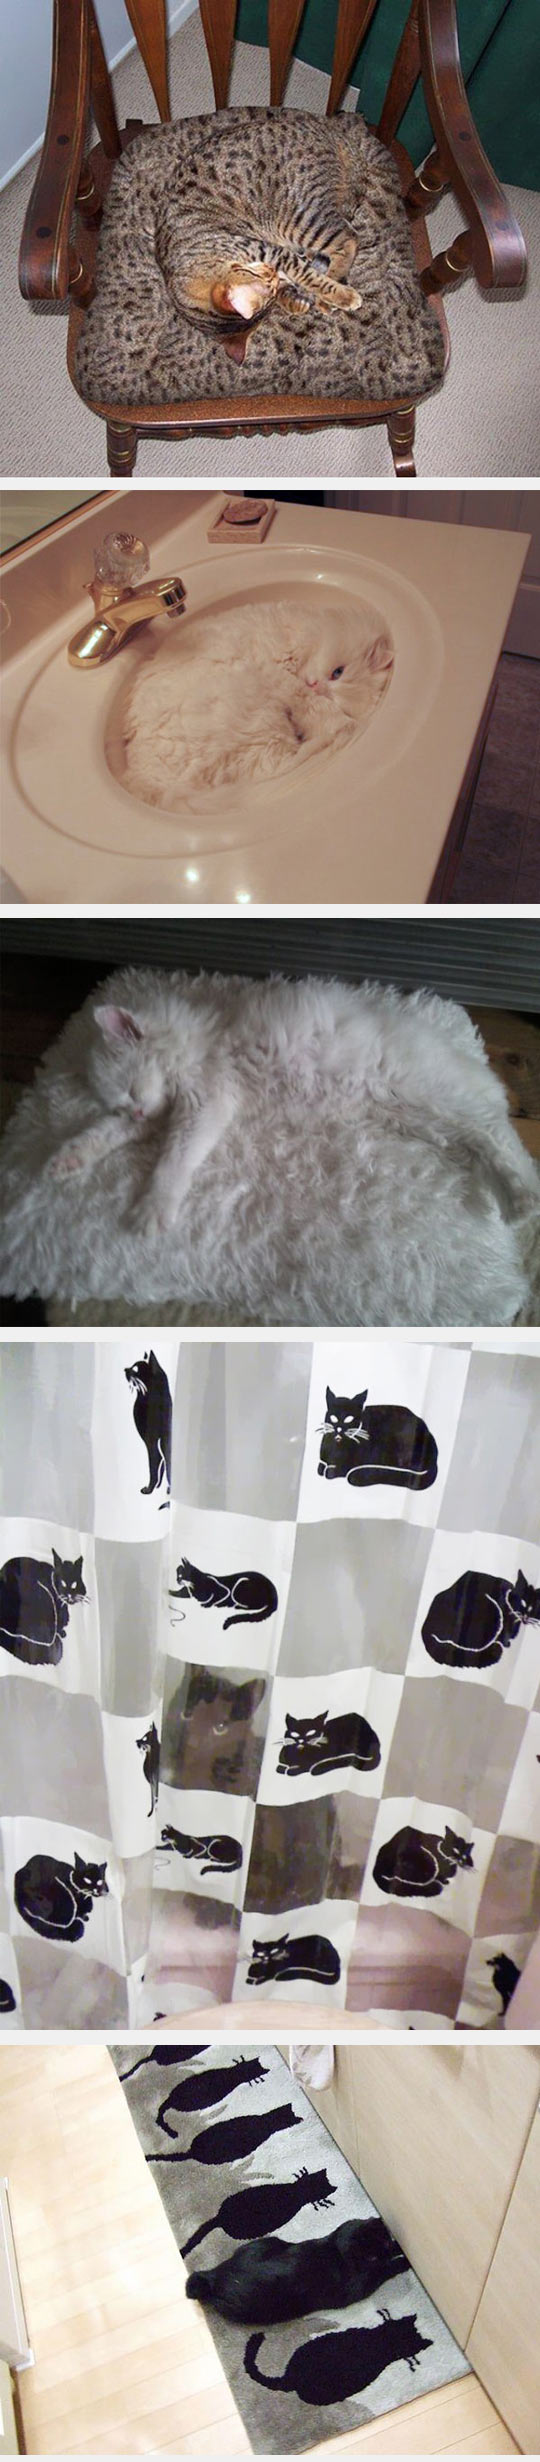 funny-camouflage-cat-chair-carpet